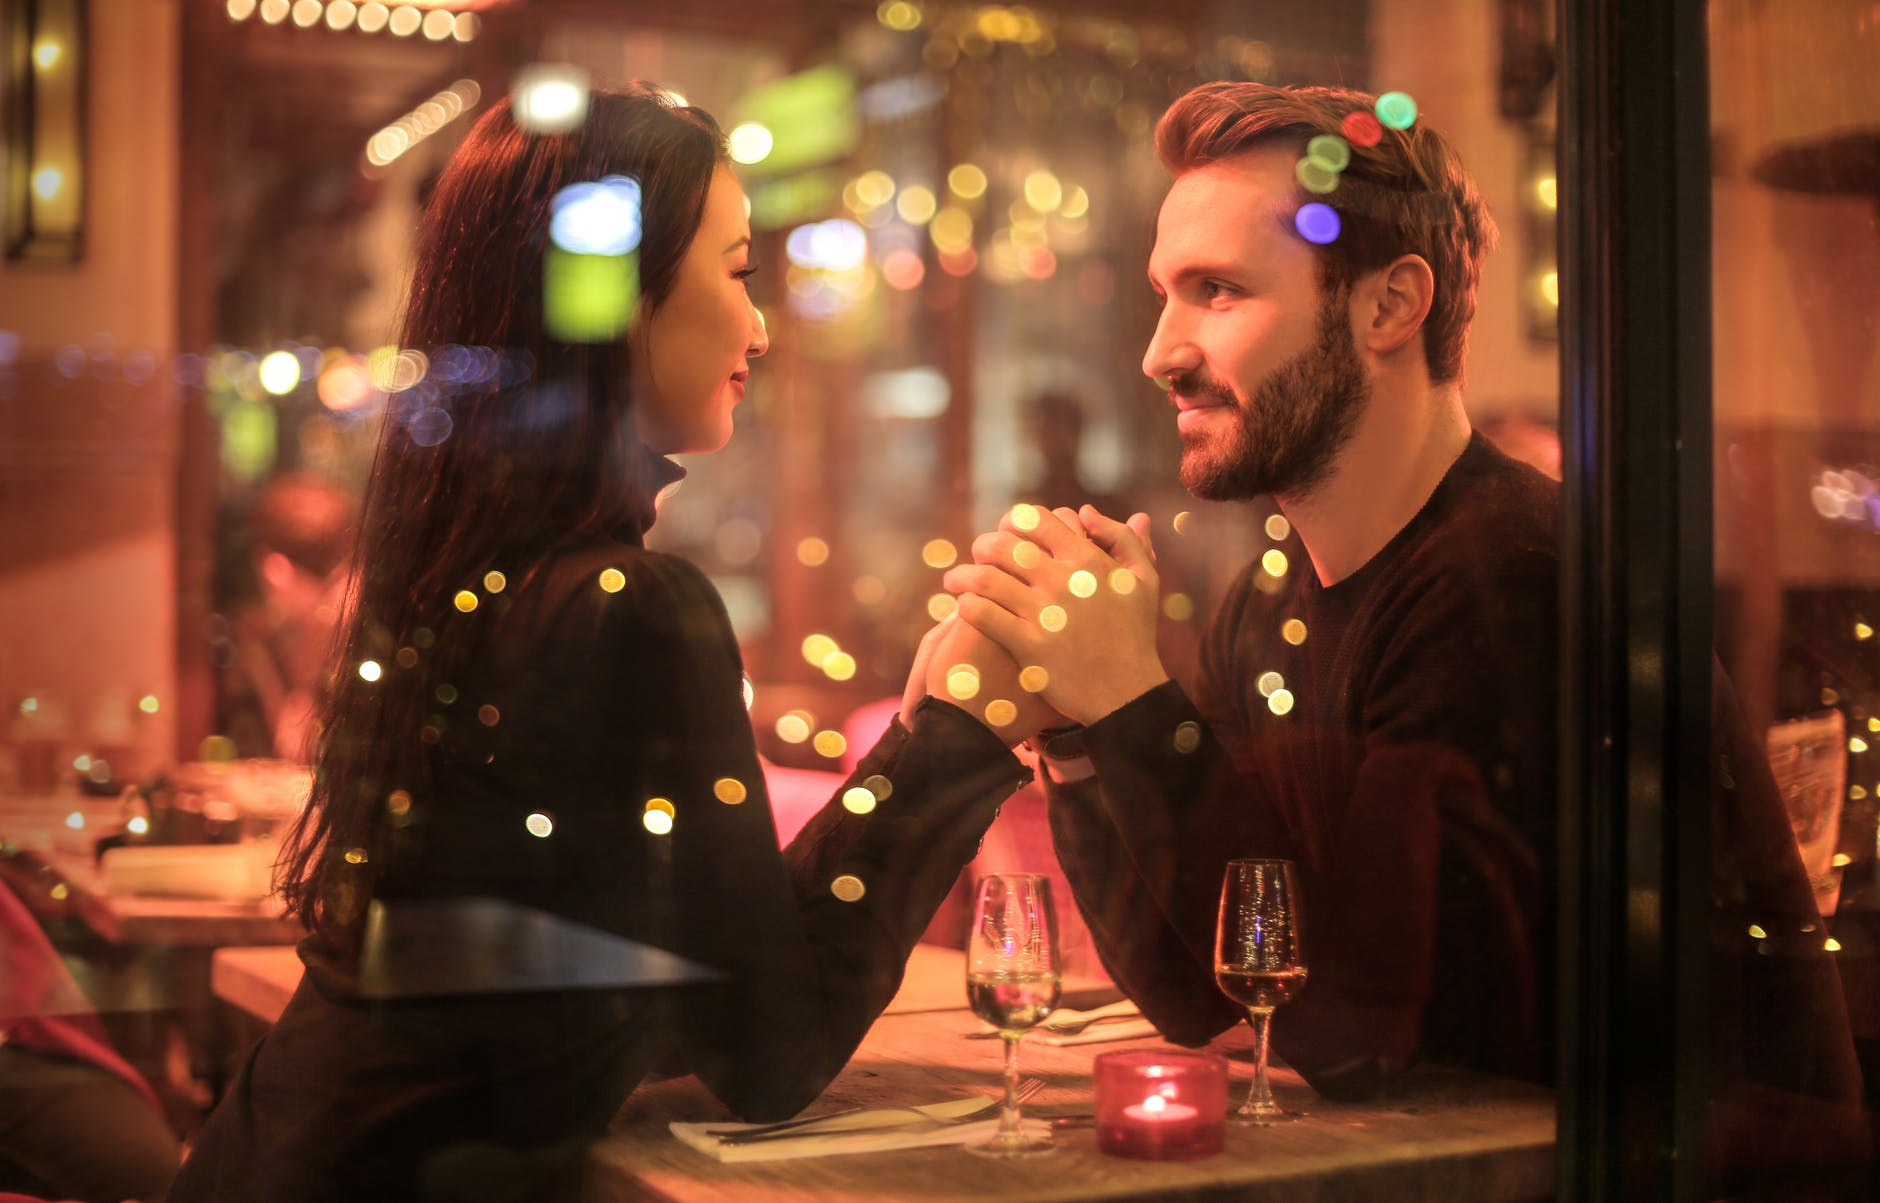 The best dating apps (and sites) of 2019: Find the right one for